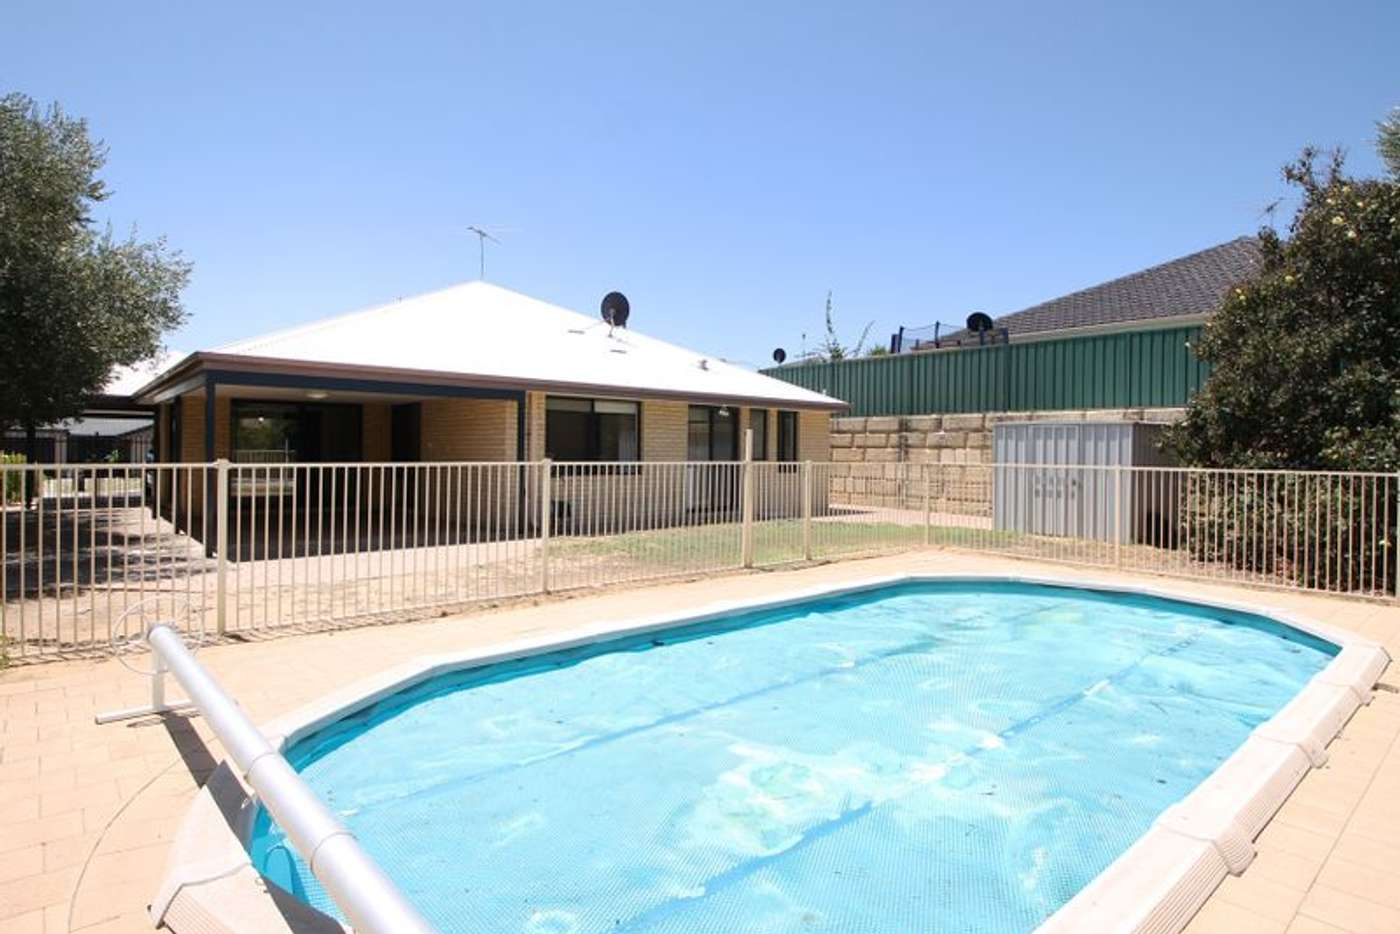 Main view of Homely house listing, 3 Astroloma Drive, Success WA 6164